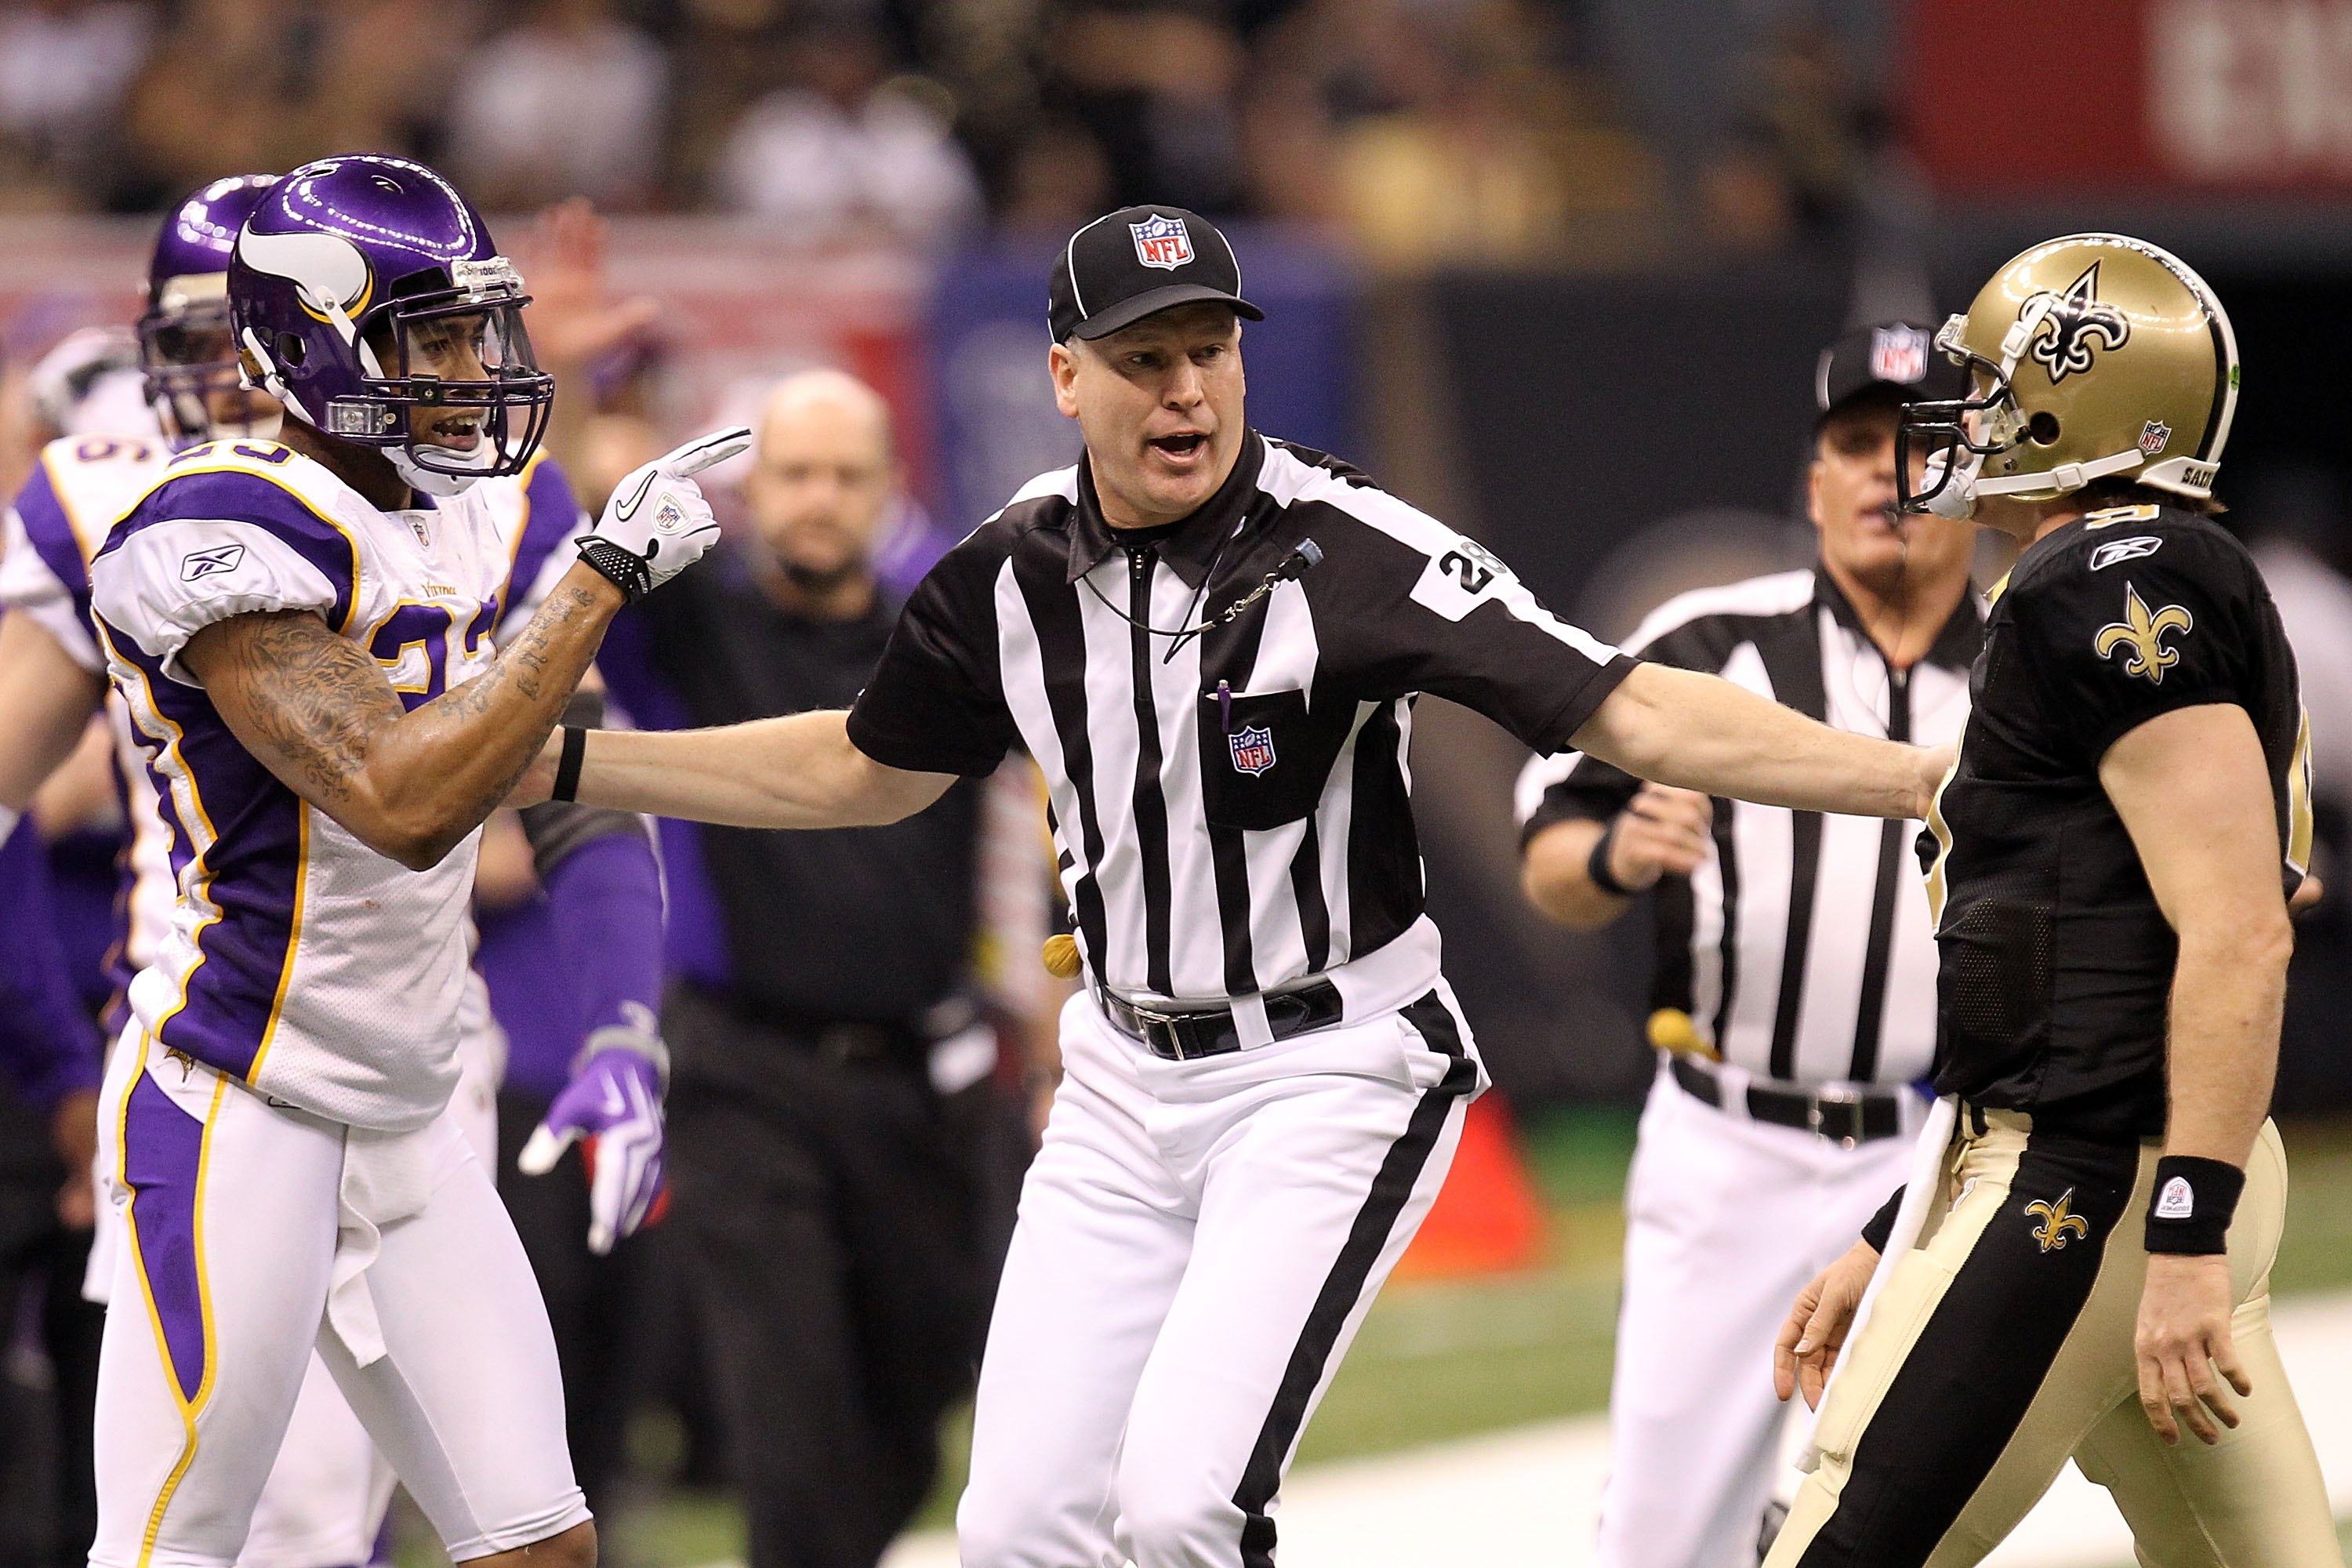 NEW ORLEANS - JANUARY 24  Head linesman Mark Hittner seperates Drew Brees   9 of 74a332749